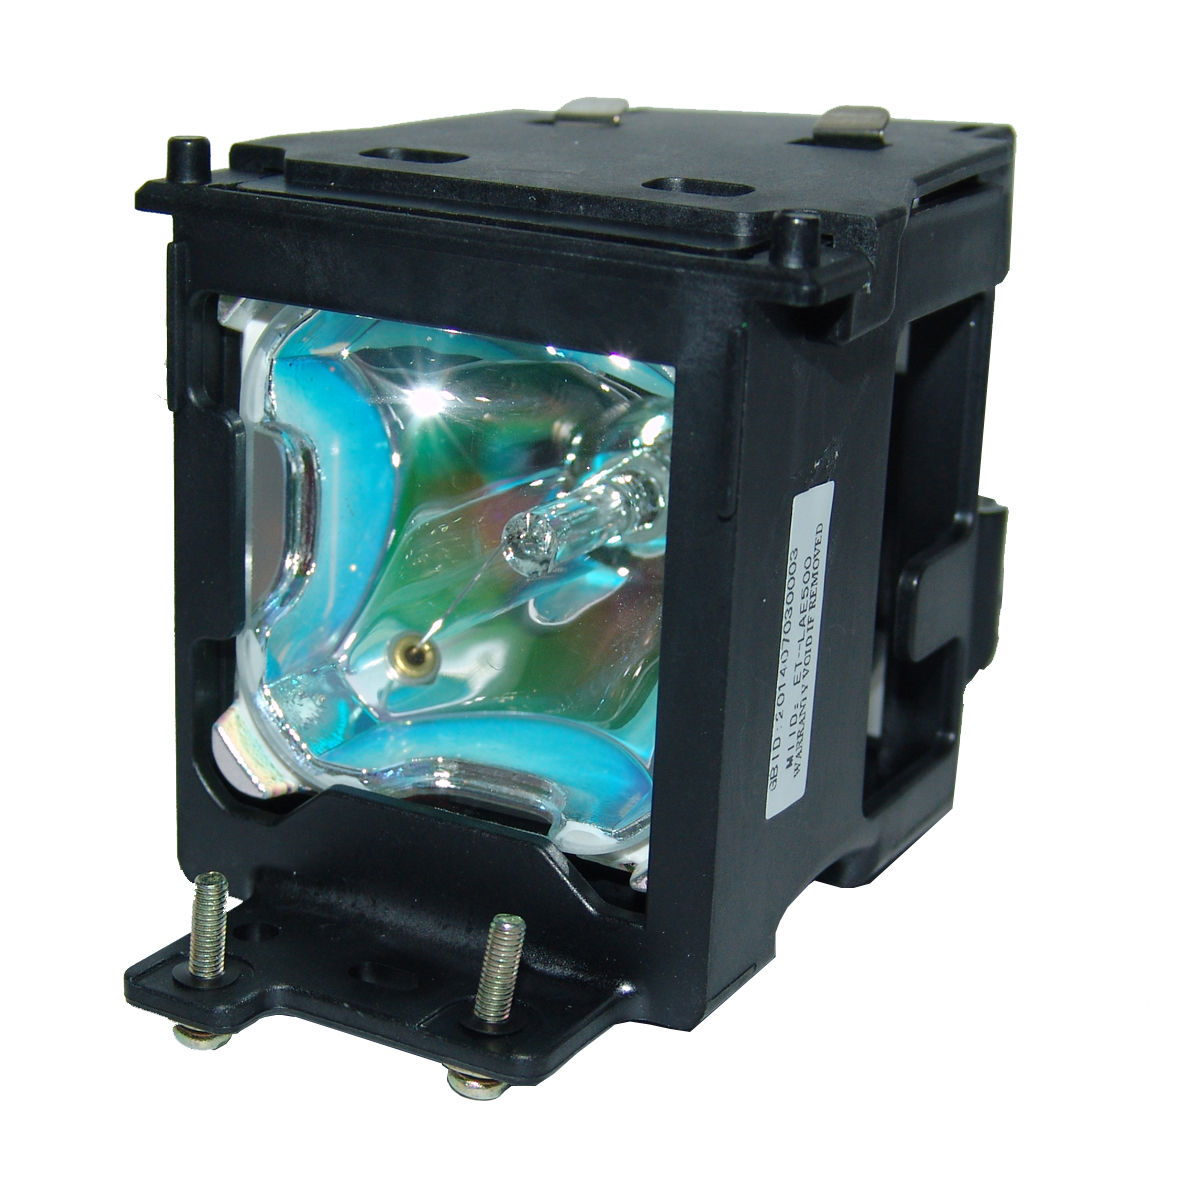 ET-LAE500 LAE500 ETLAE500 For Panasonic PT-AE500E PT-AE500 PT-AE500U PT-L500U Projector Bulb Lamp with housing hot selling et lae500 projector lamp bulb with housing replacement for panasonic pt l500u pt ae500 pt l500u pt ae500u